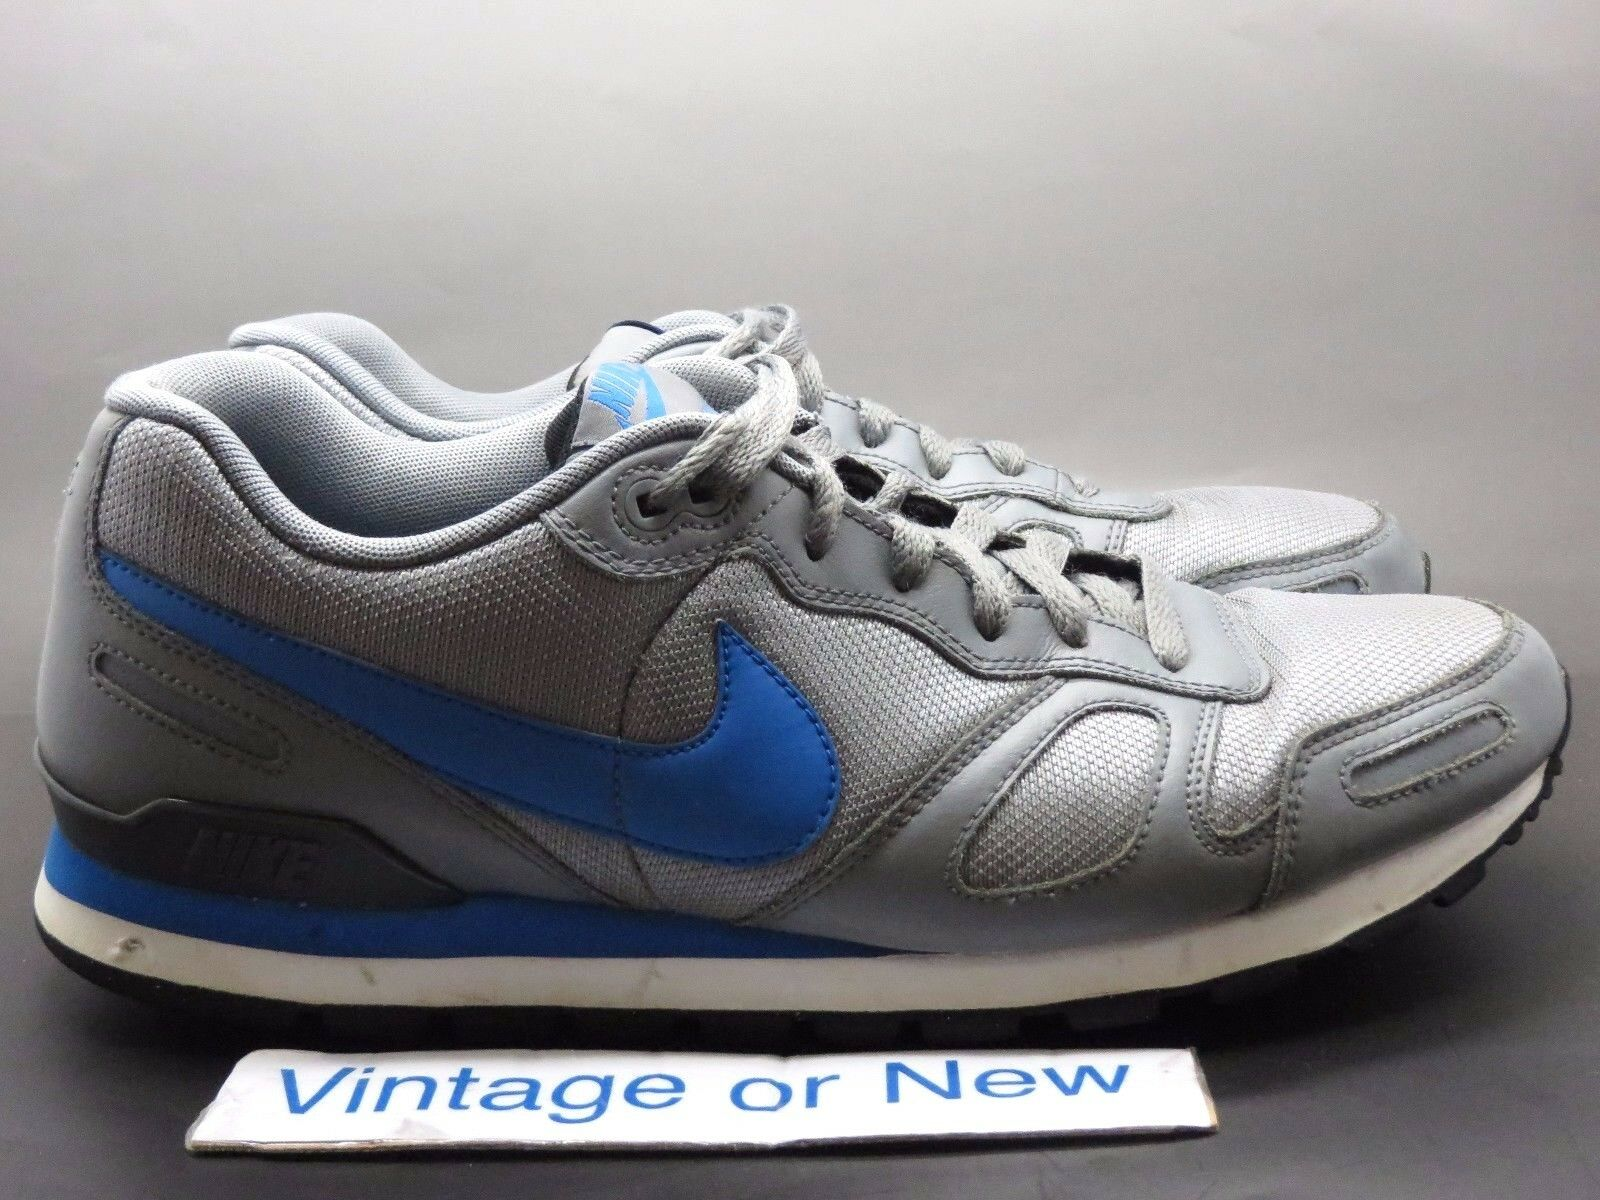 New shoes for men and women, limited time discount Men's Nike Air Waffle Trainer Cool Grey Soar Blue White Black 429628-099 Price reduction